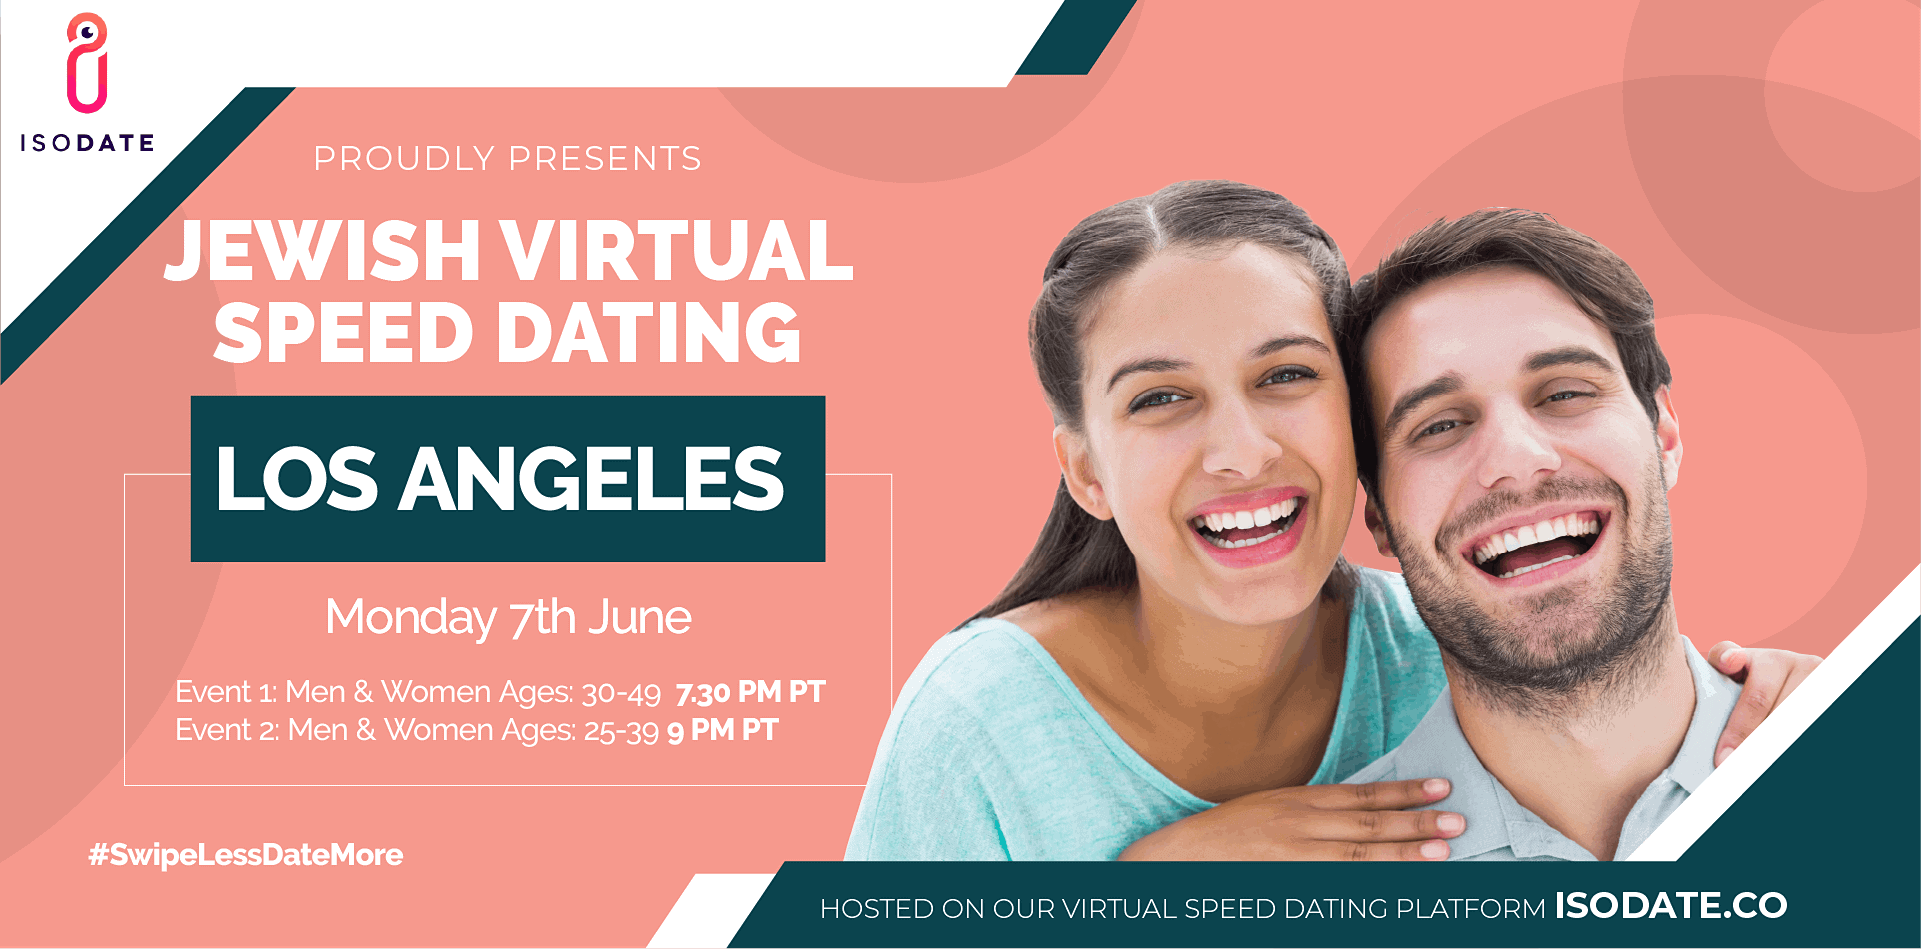 Isodate's Los Angeles Jewish Virtual Speed Dating